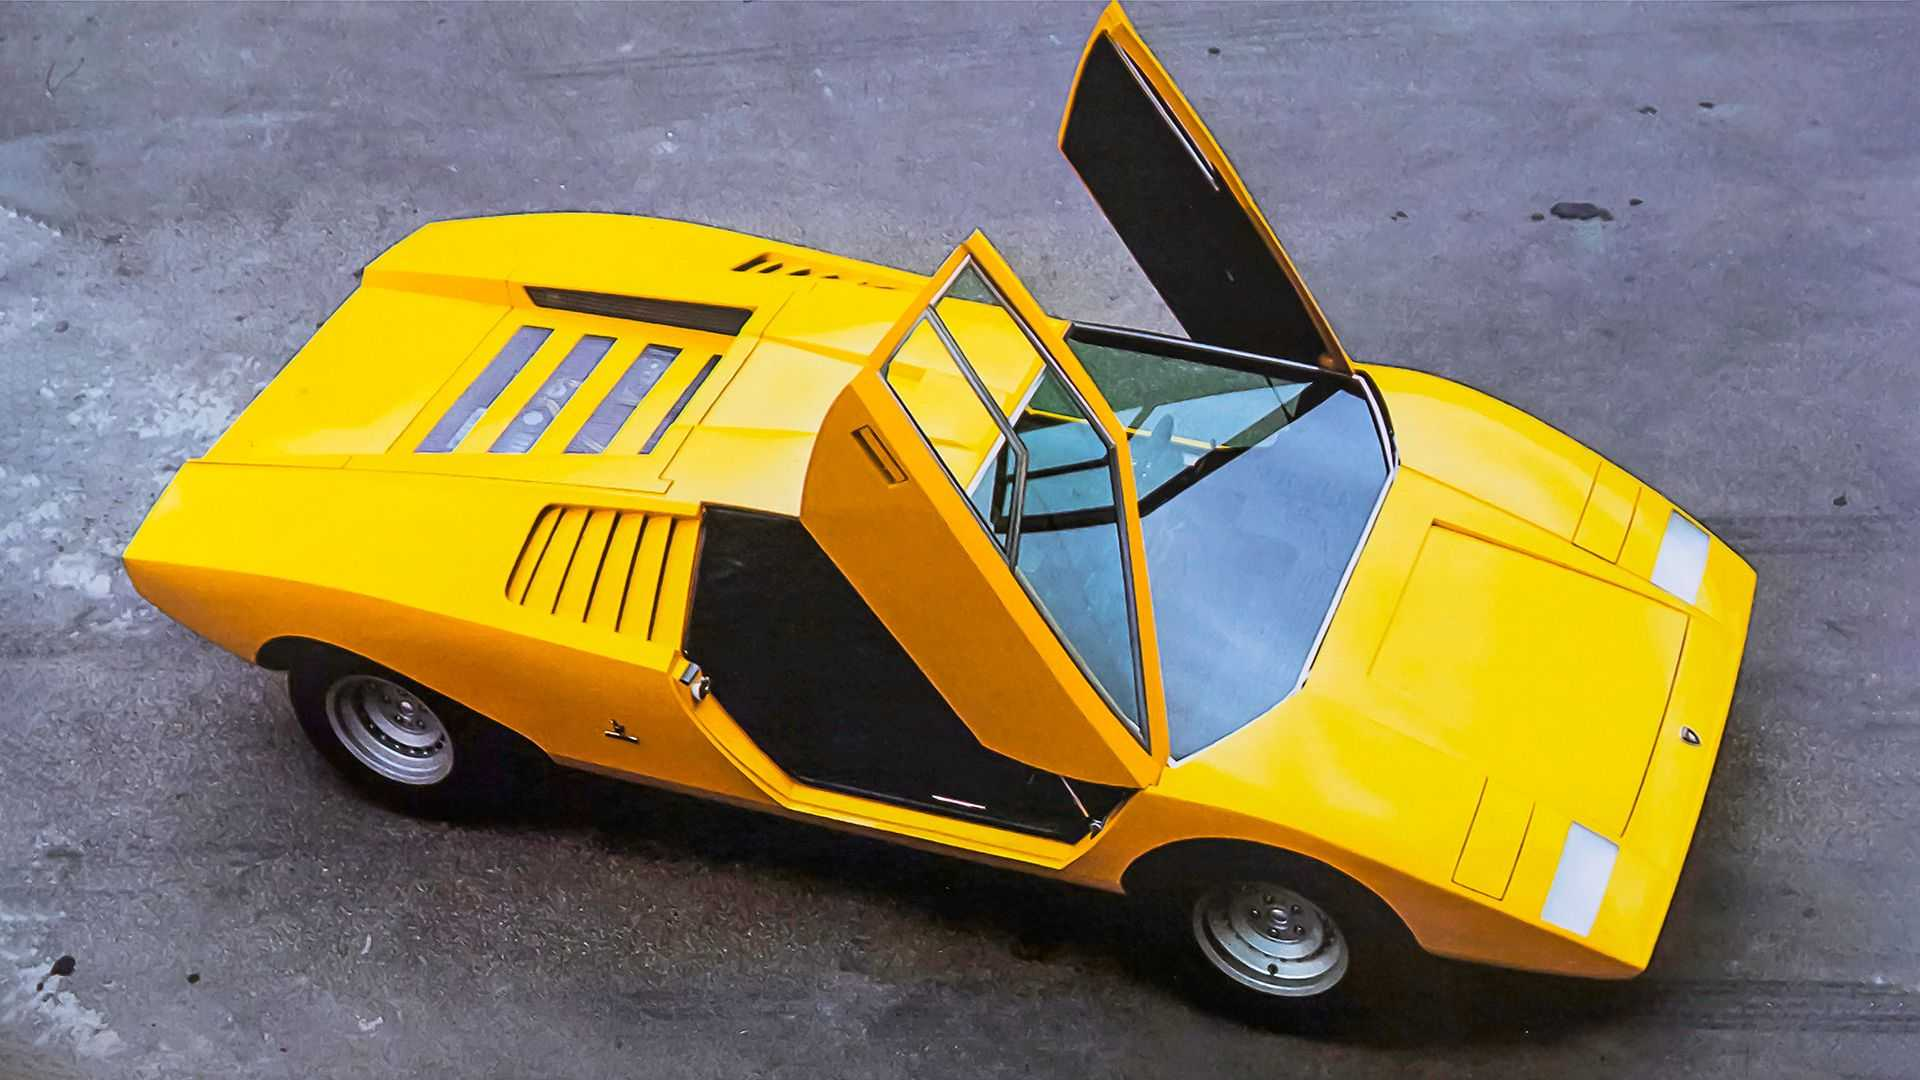 The Italian sports car maker has recently celebrated the 50th birthday of its Countach coupe by unveiling its modern part-electric re-interpretation named the LPI 800-4. However, as the latest video teaser seems to suggest, the company is also working on restoring its first Countach prototype destroyed half a century ago.